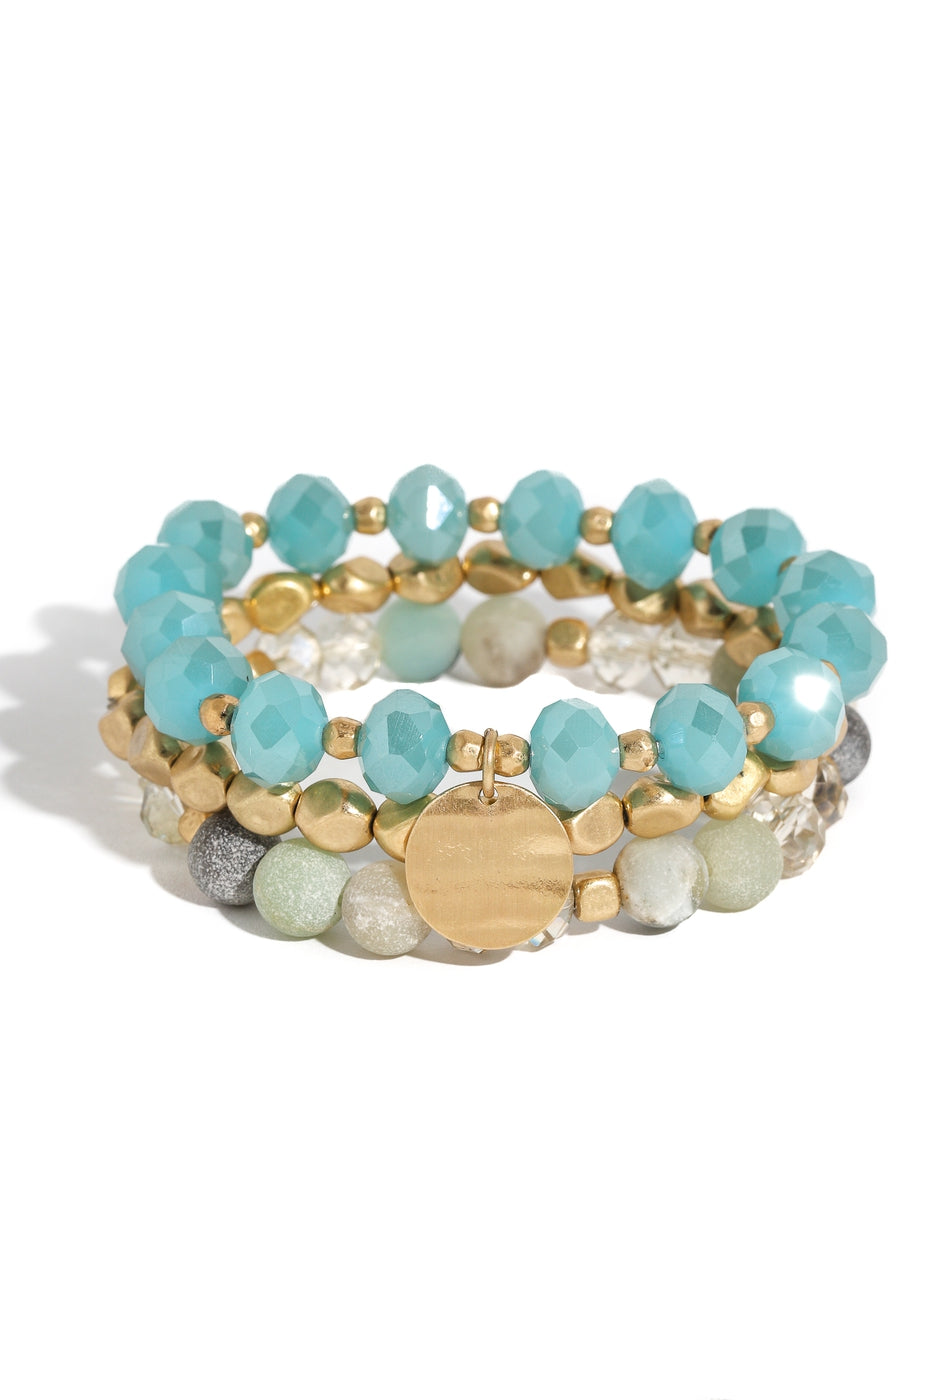 Aqua and Gold Beaded Bracelet